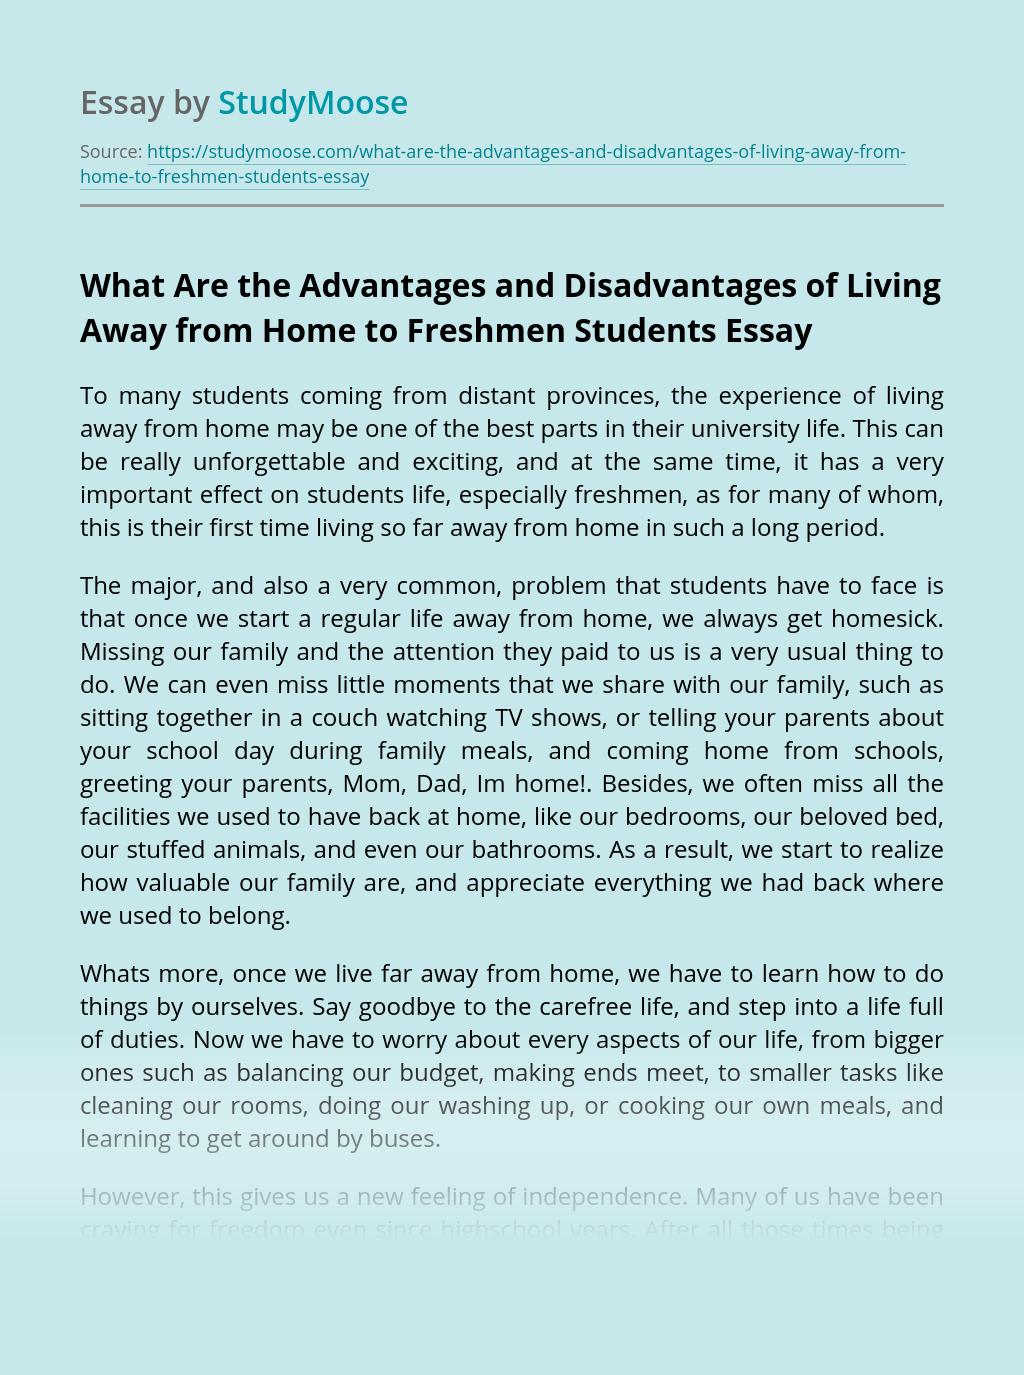 What Are the Advantages and Disadvantages of Living Away from Home to Freshmen Students